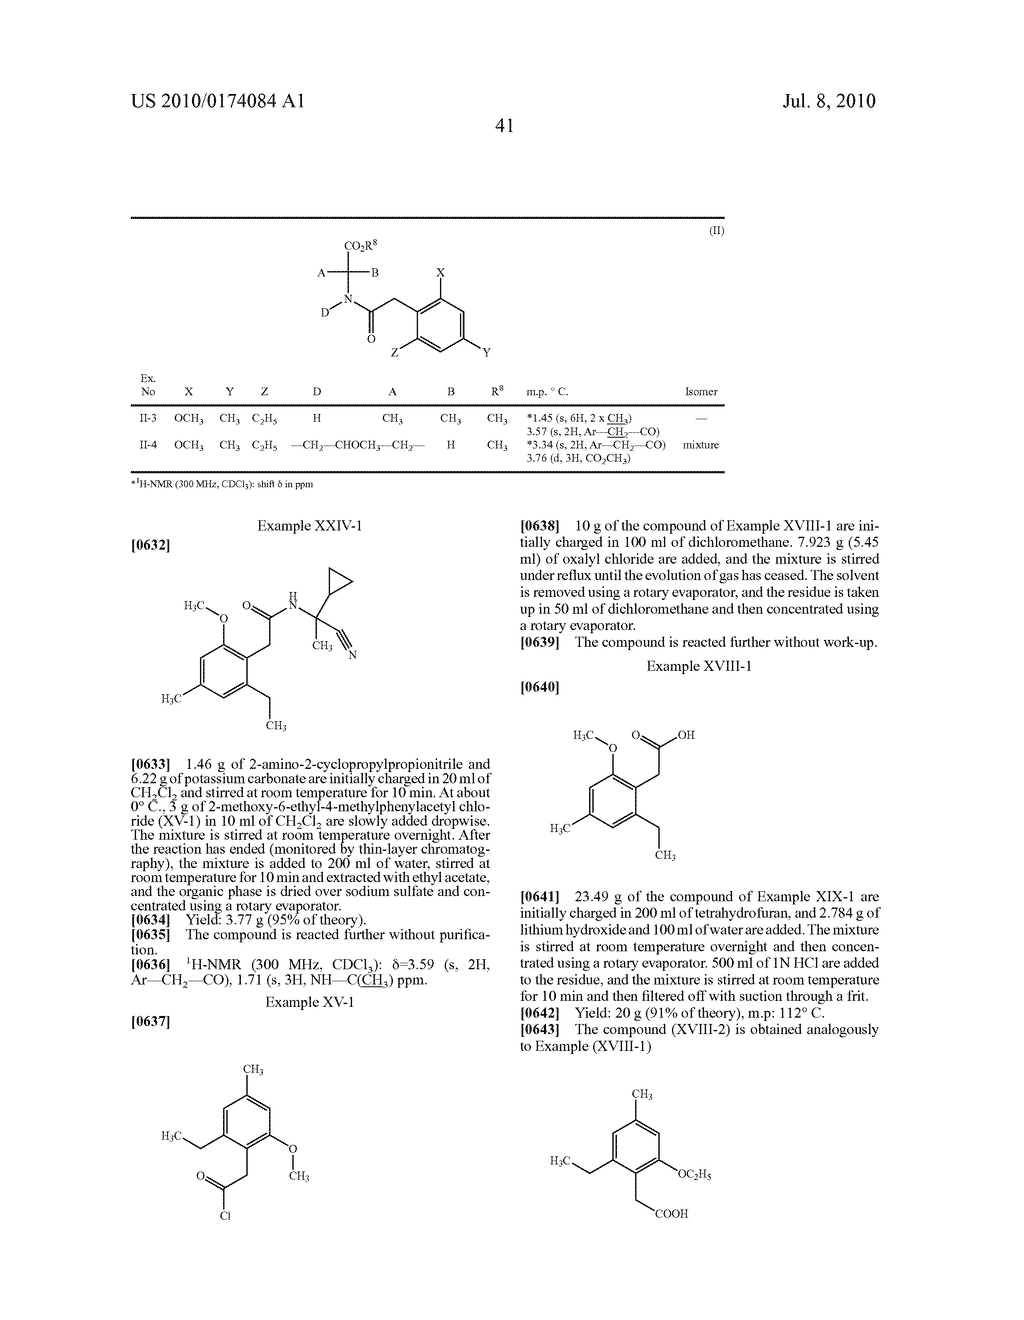 2-Alkoxy-6-alkyl-phenyl-substituted Spirocyclic Tetramic Acid Derivatives - diagram, schematic, and image 42